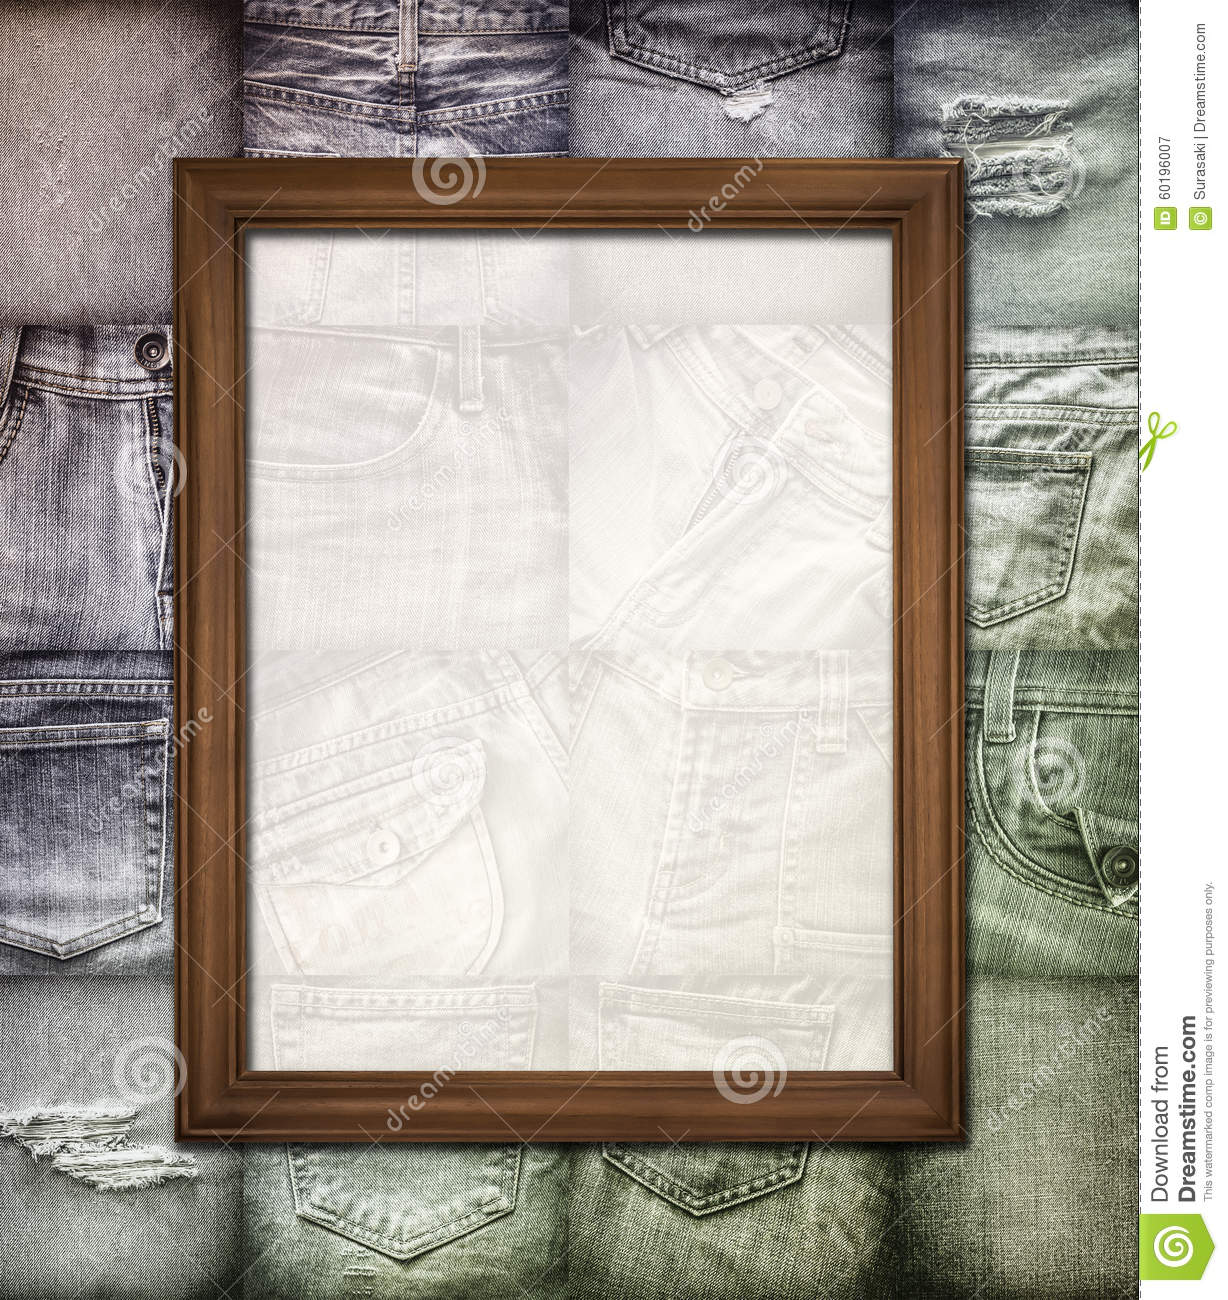 Vintage Picture Frame On Collage Jeans Stock Image - Image of ...